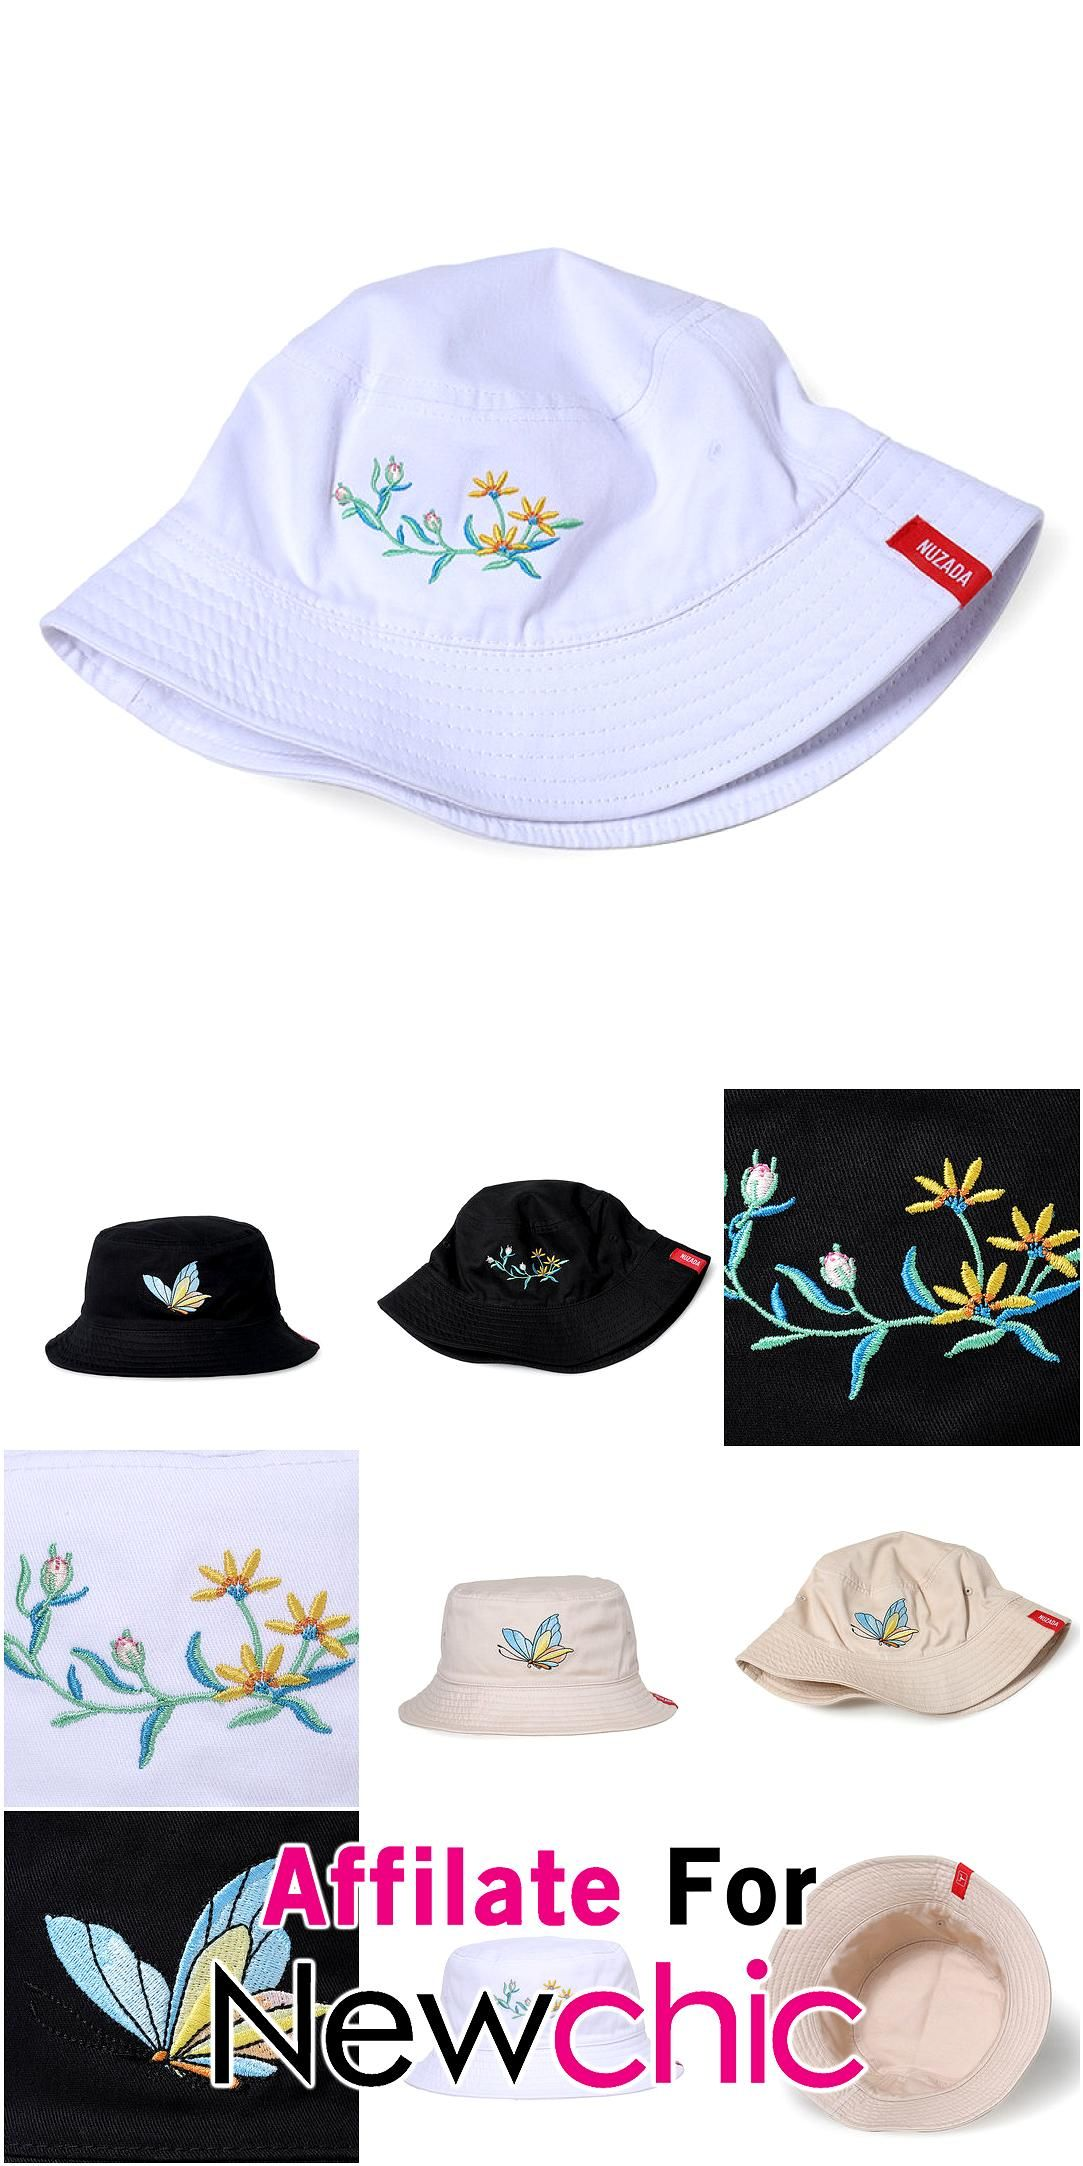 Women Men Doublesided Wear Embroidery Fishing Hat Outdoor Windproof Sunshade Breathable Cap USD 15 Women Men Doublesided Wear Embroidery Fishing Hat Outdoor Windproof Sun...